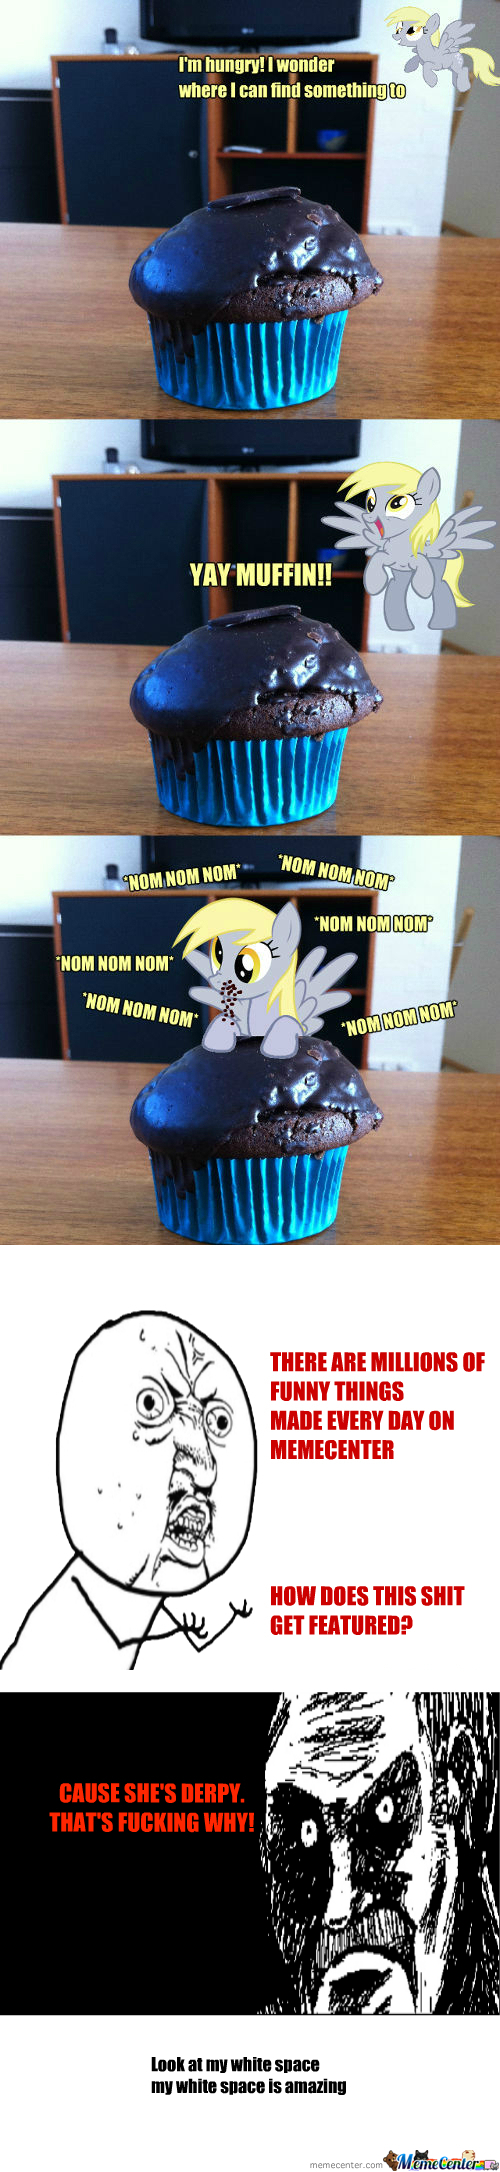 [RMX] [RMX] Derpy Hooves Finds A Chocolate Muffin.